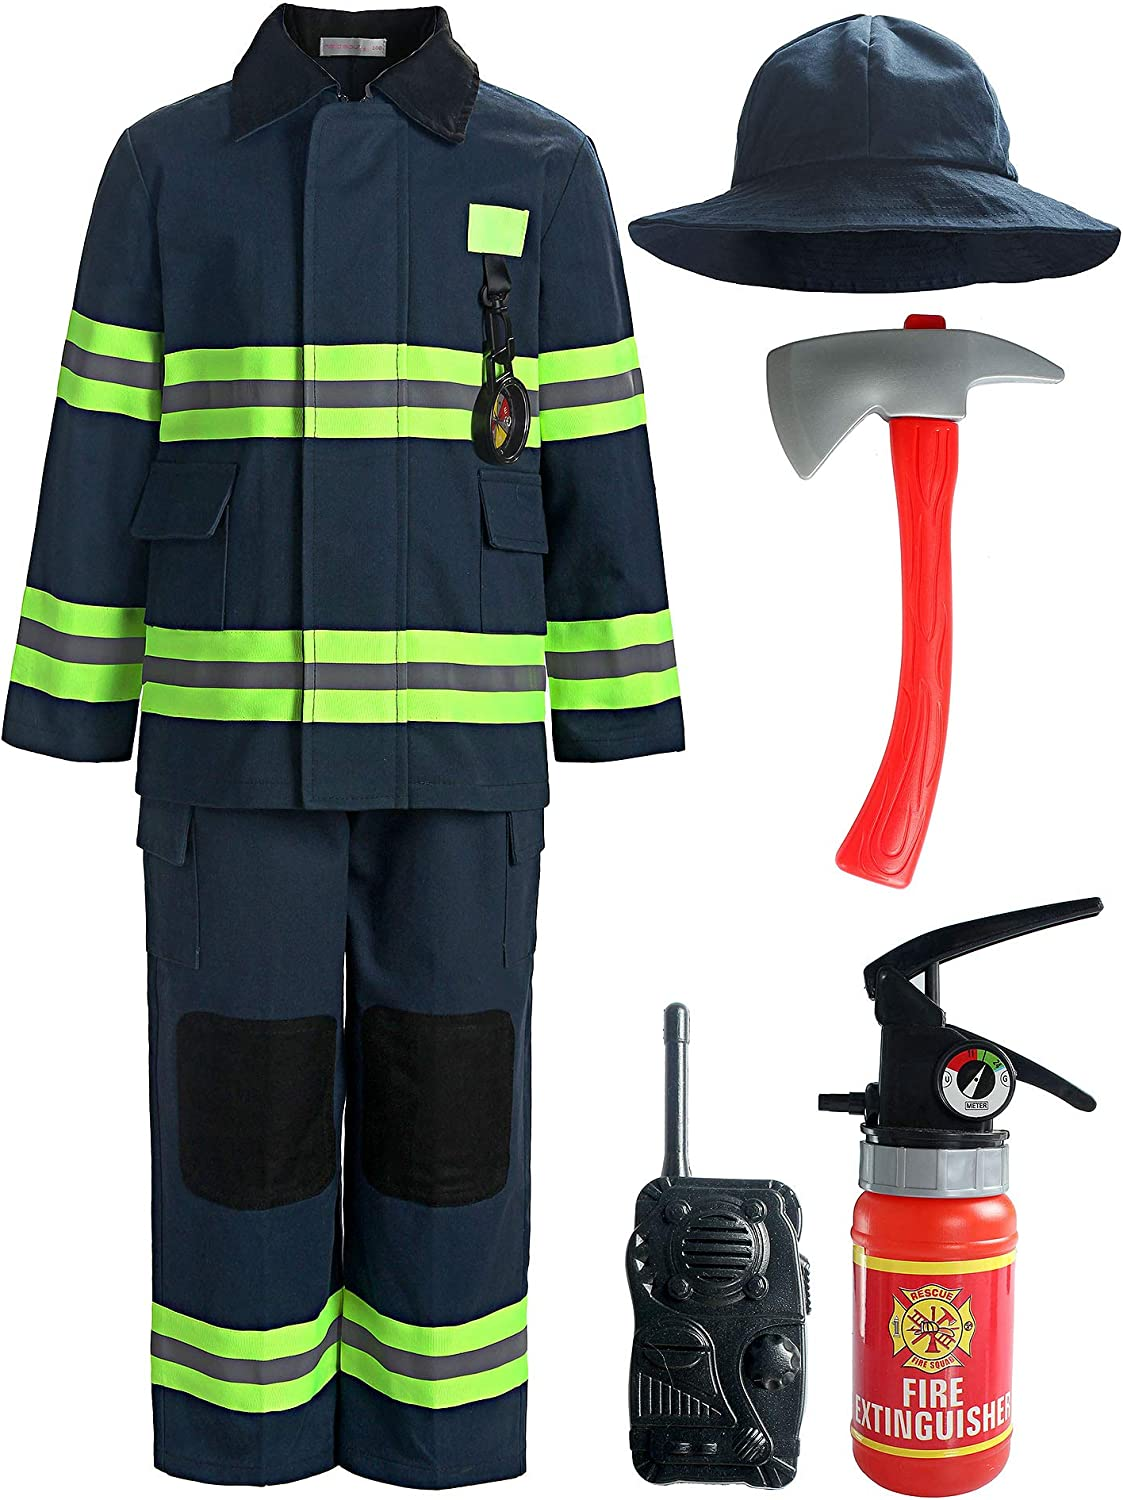 ReliBeauty Children Firefighter Role Play Fireman Costume for Kids